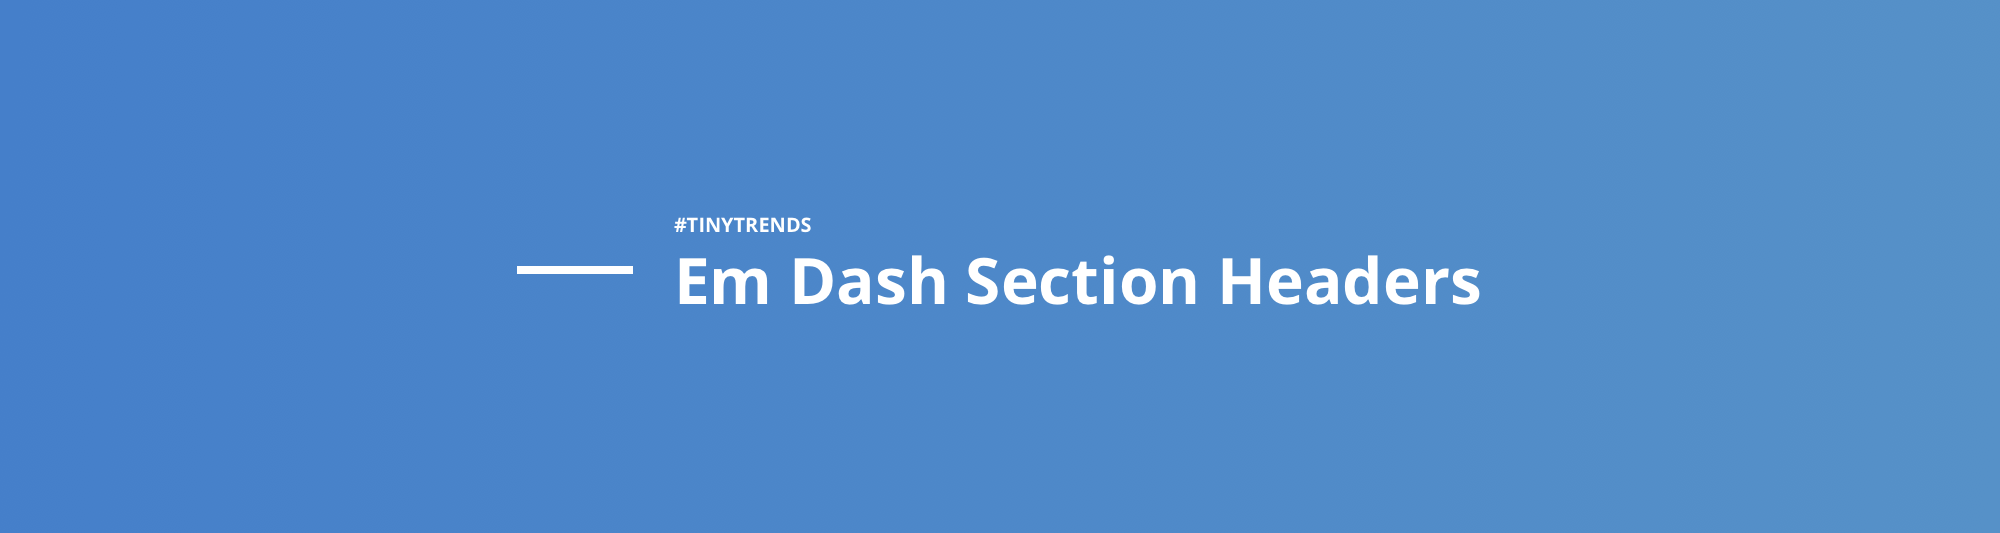 Design Trend: Em Dash Section Headers - UX Power Tools - Medium